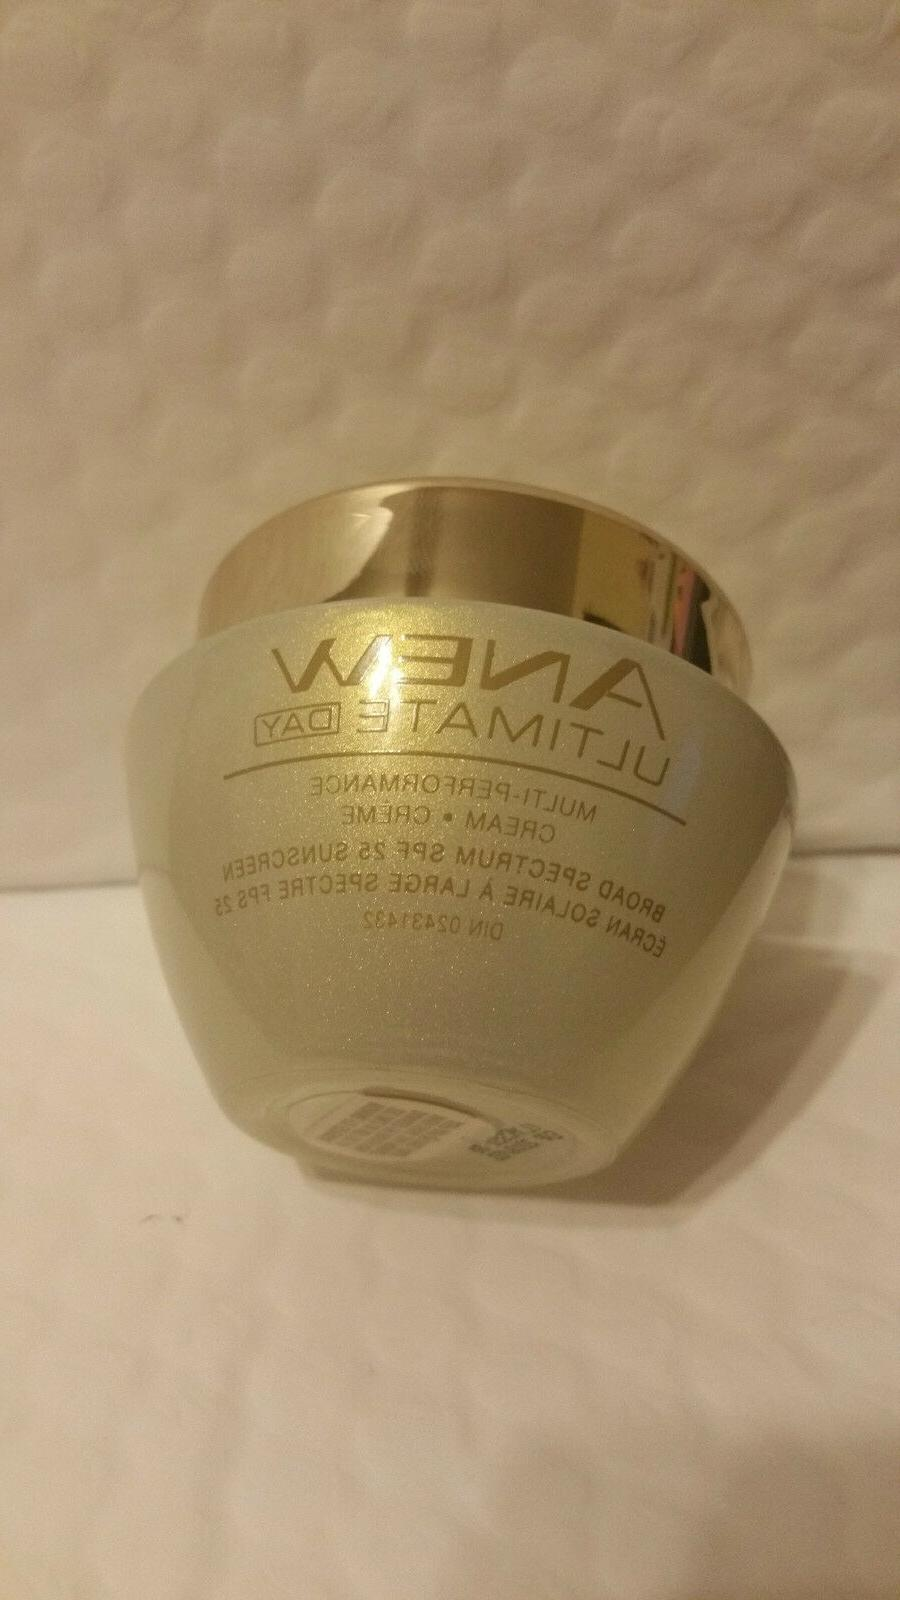 Avon Anew Ultimate Performance Day Cream. New Sealed & Fresh.